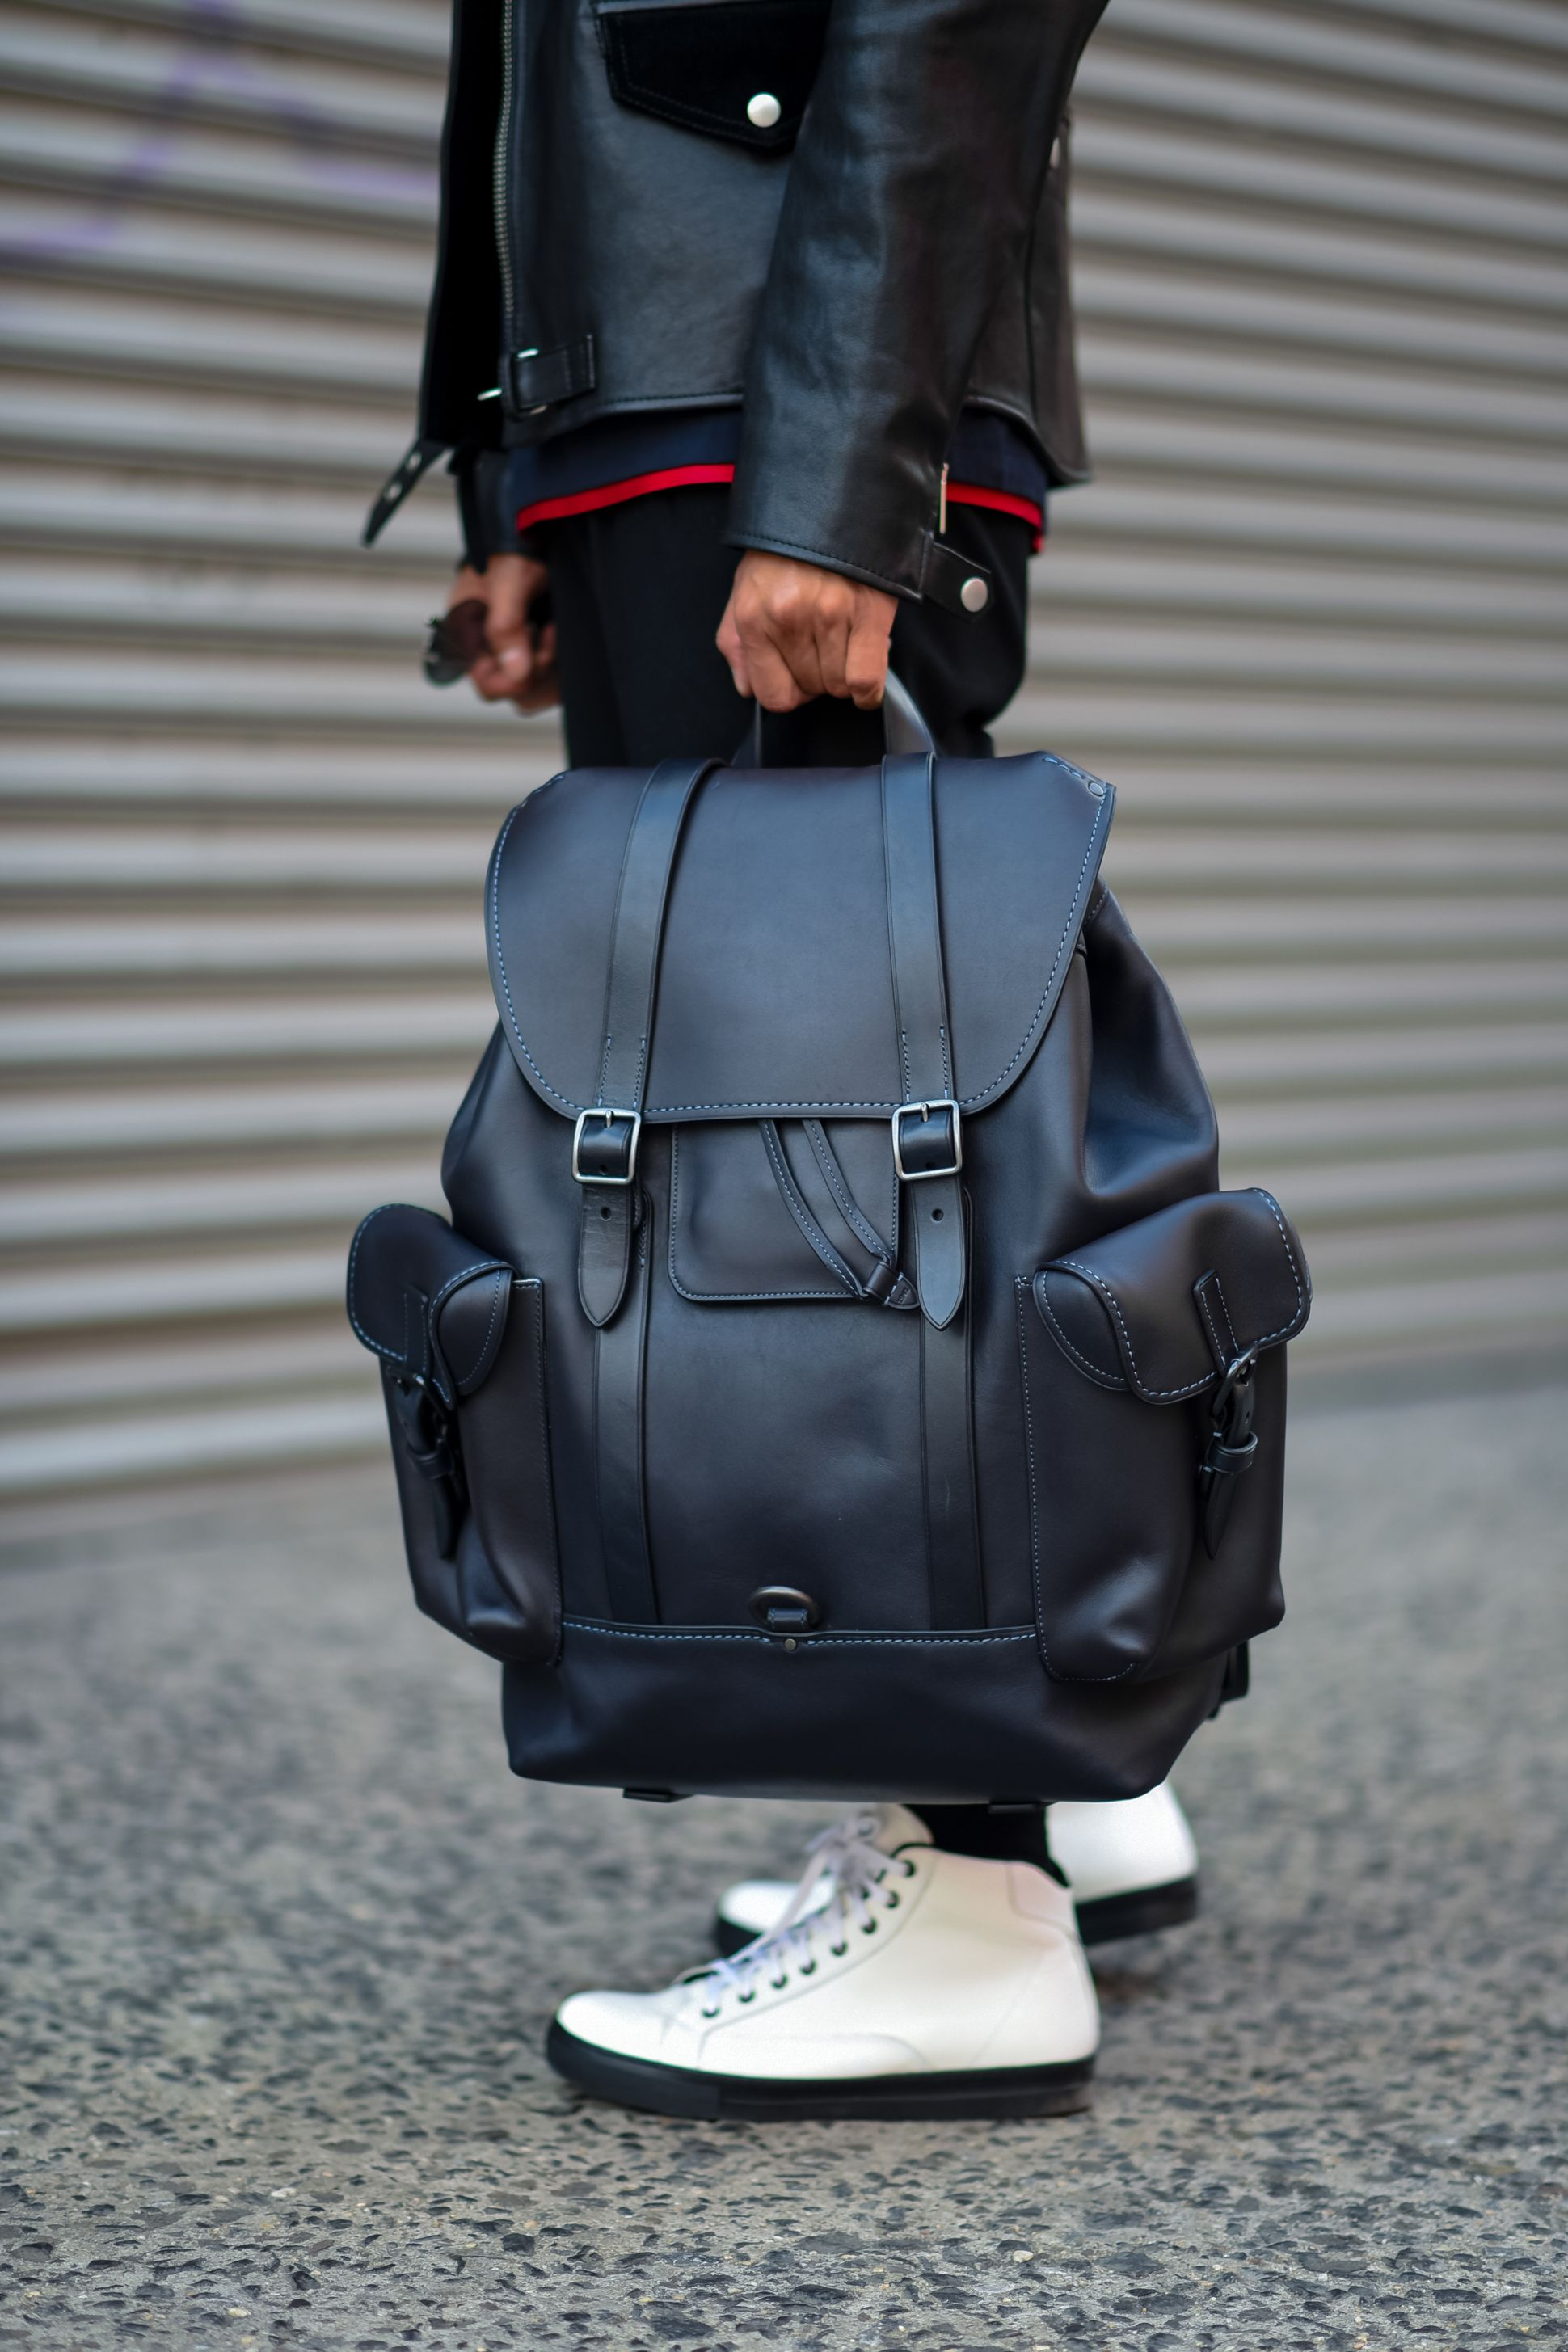 Gotham backpack in glovetanned leather | Men's backpack